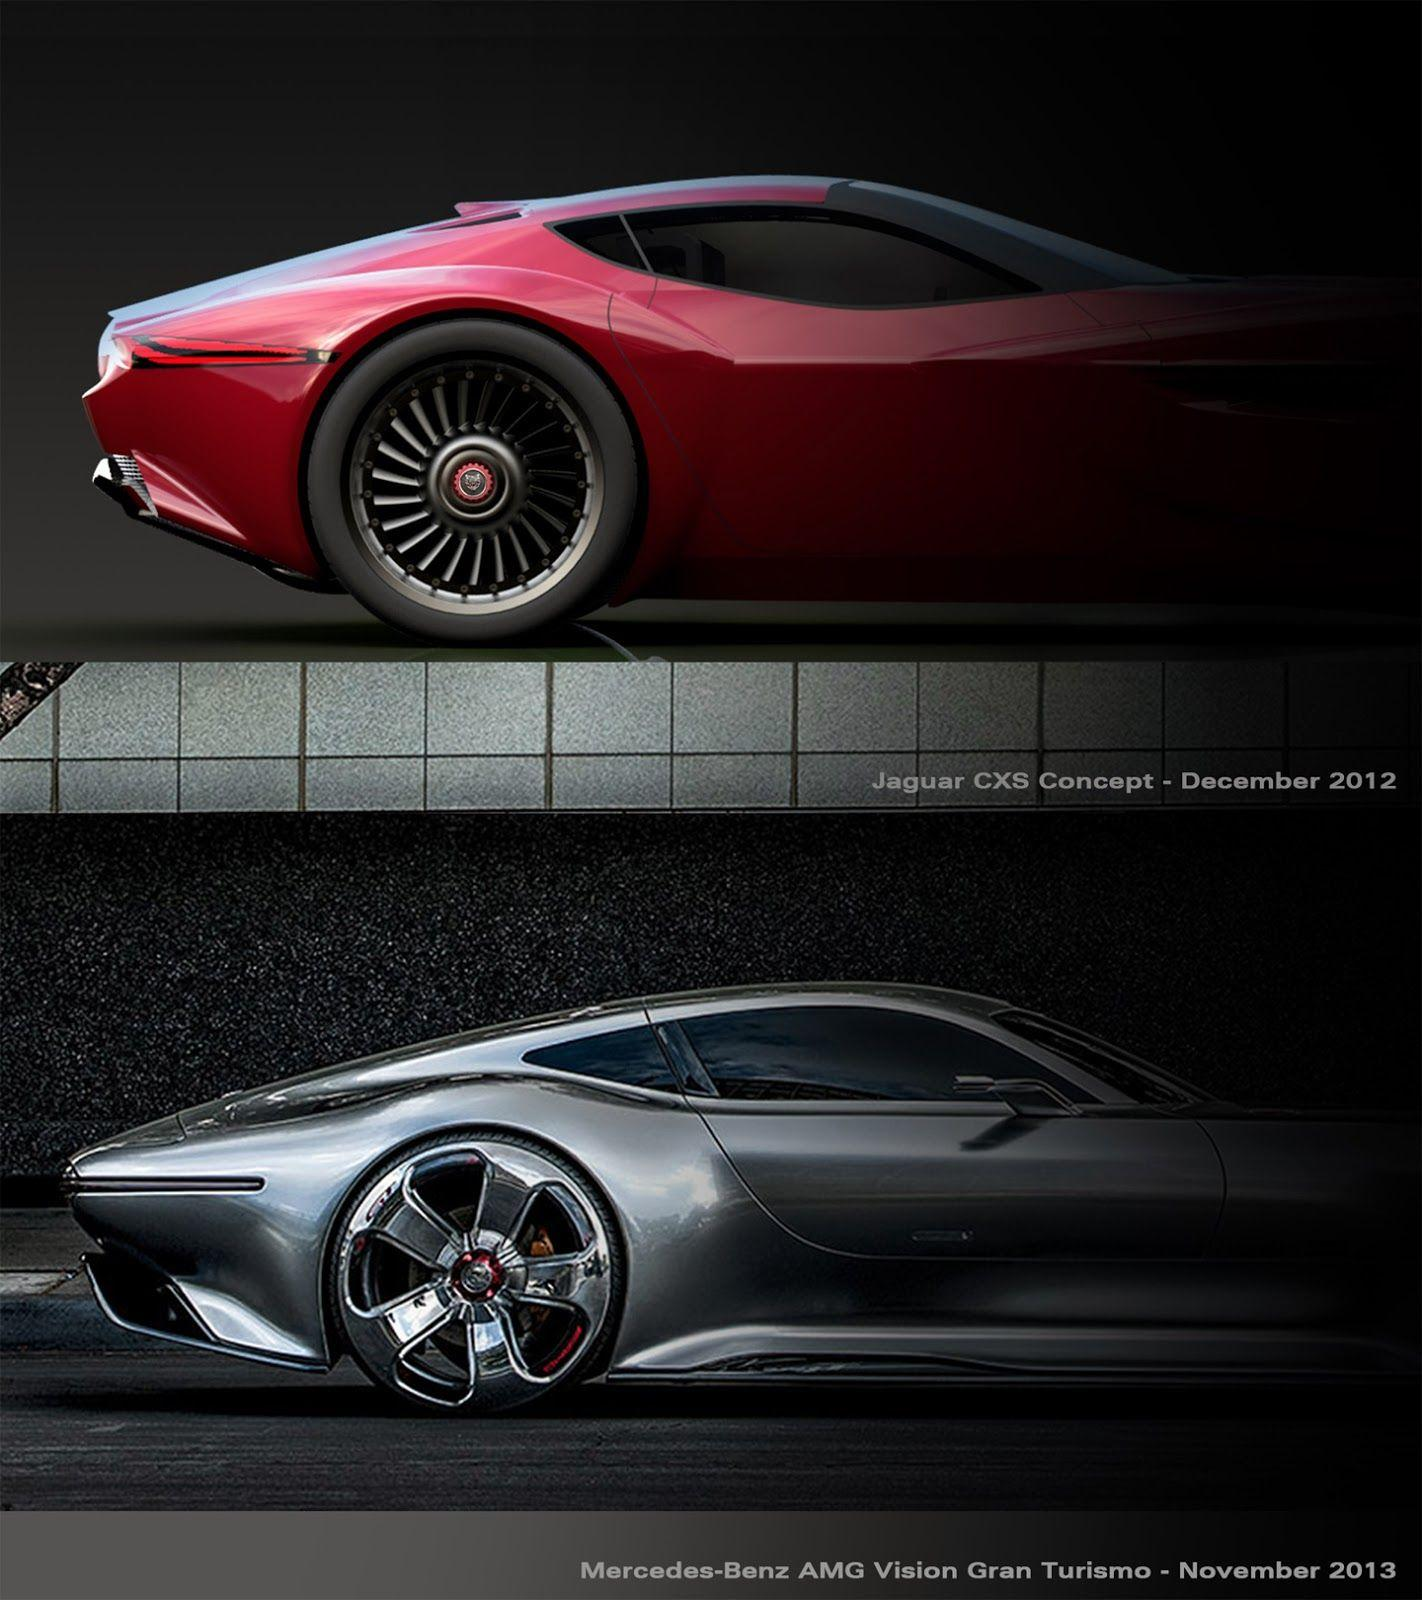 Jaguar CXS Concept vs Mercedes